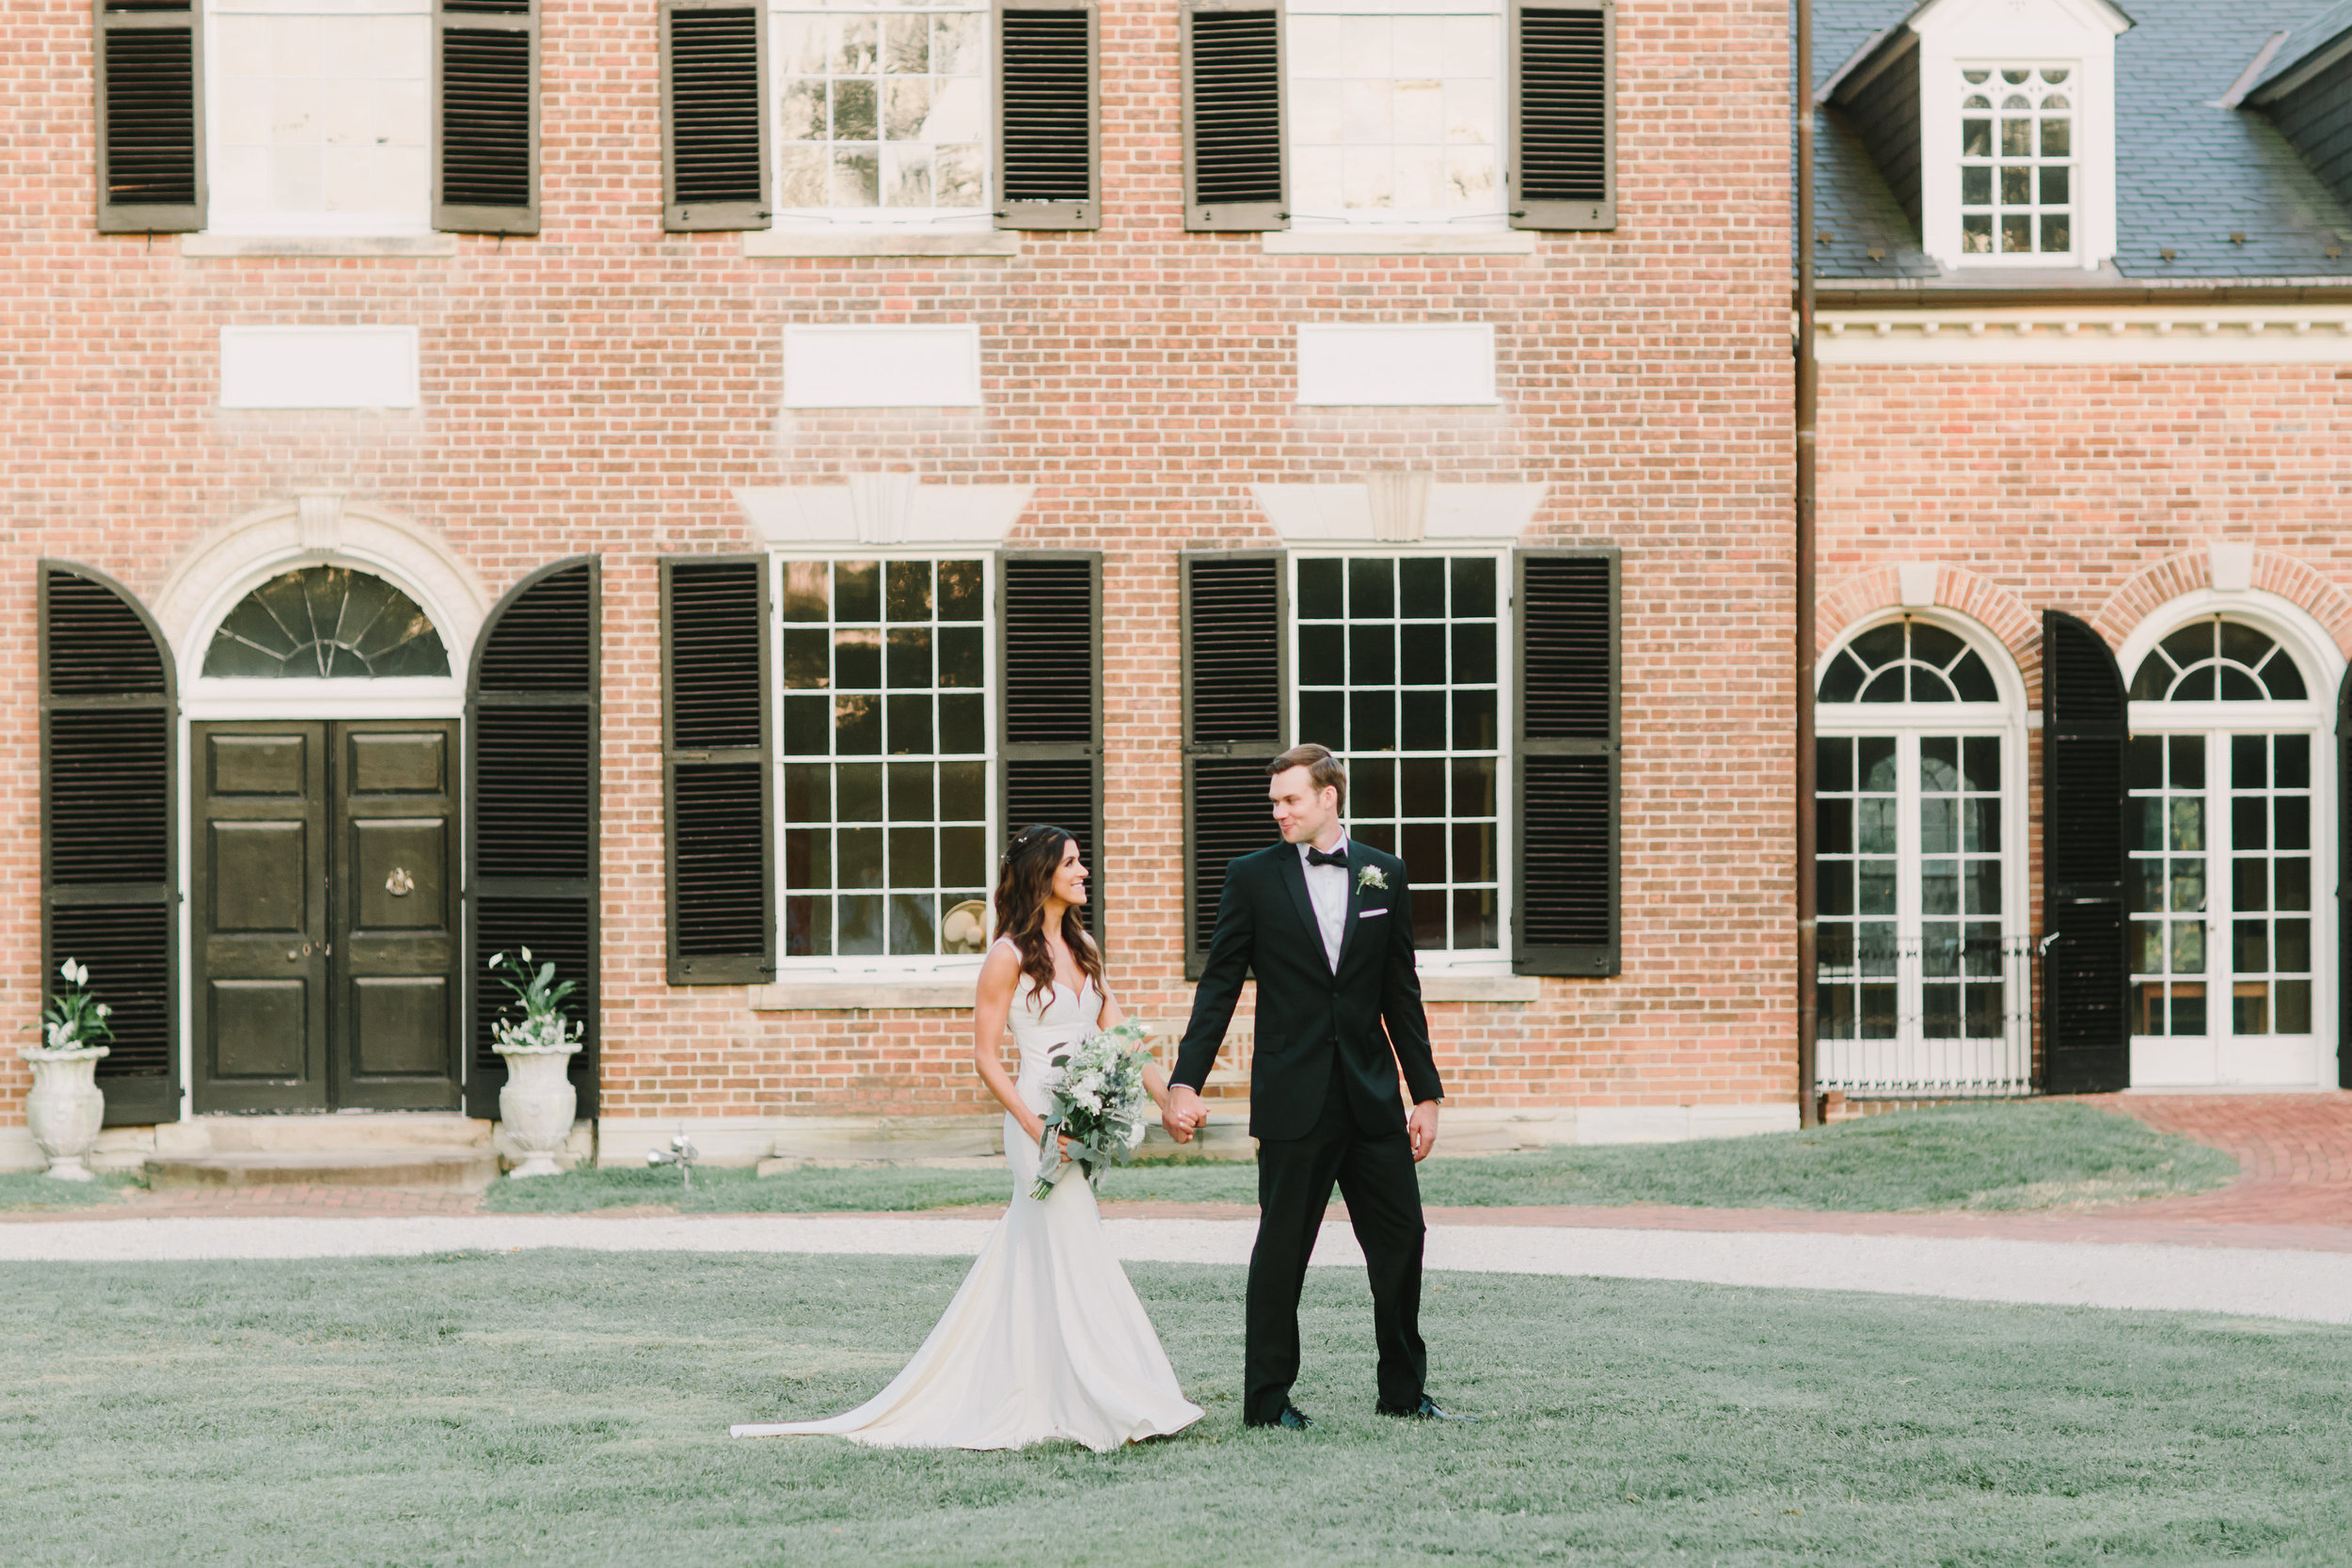 alexandria-virginia-film-wedding-photographer-woodlawn-plantation-lauren-and-cody-605.jpg